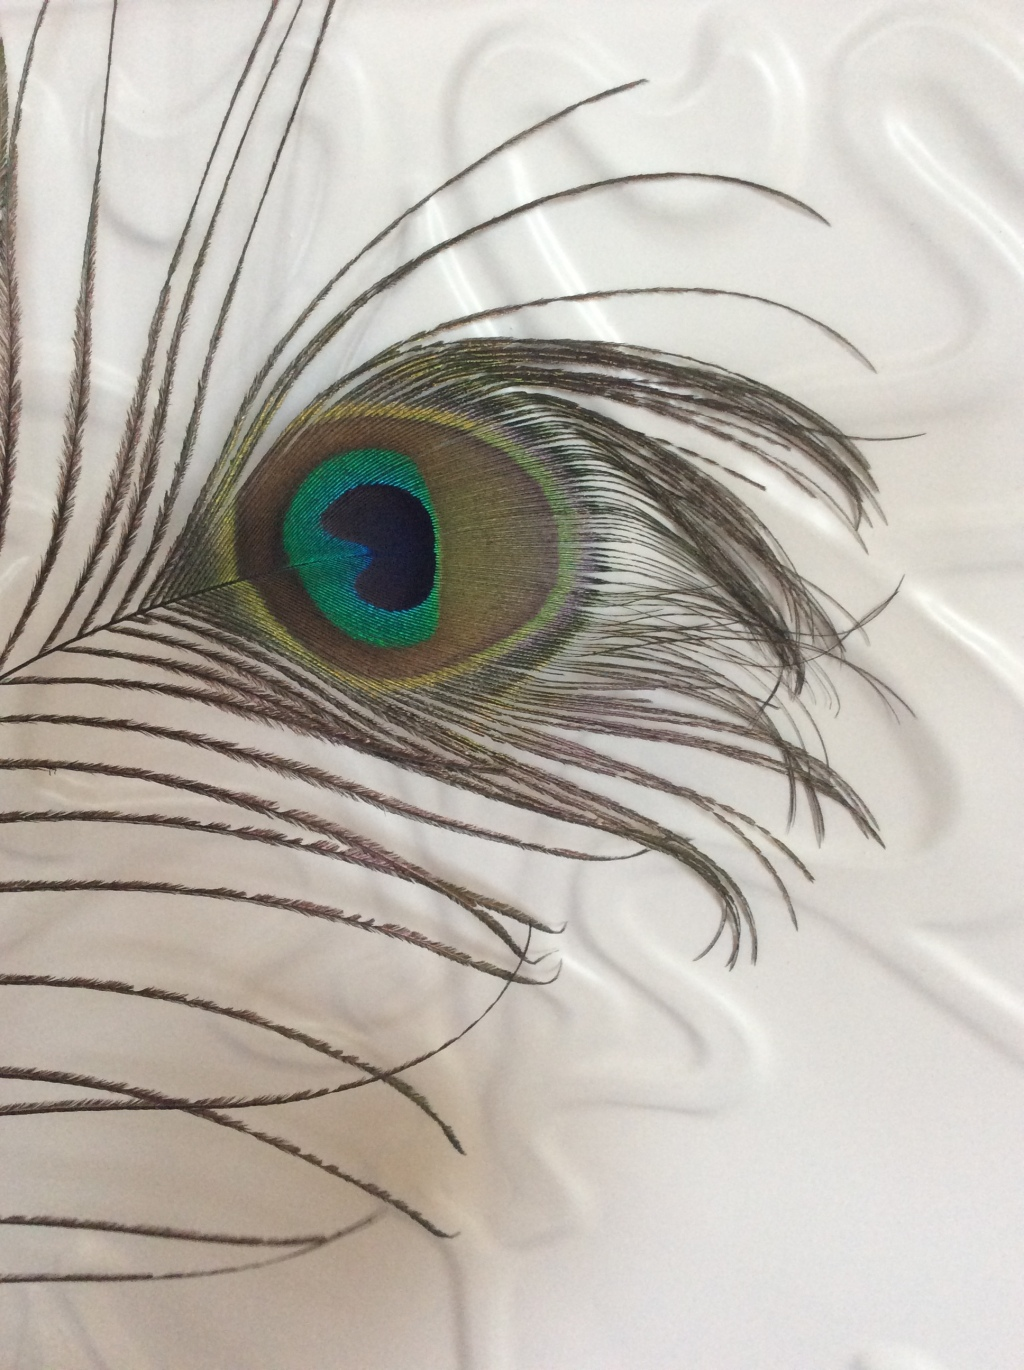 Peacock eye feather closeup